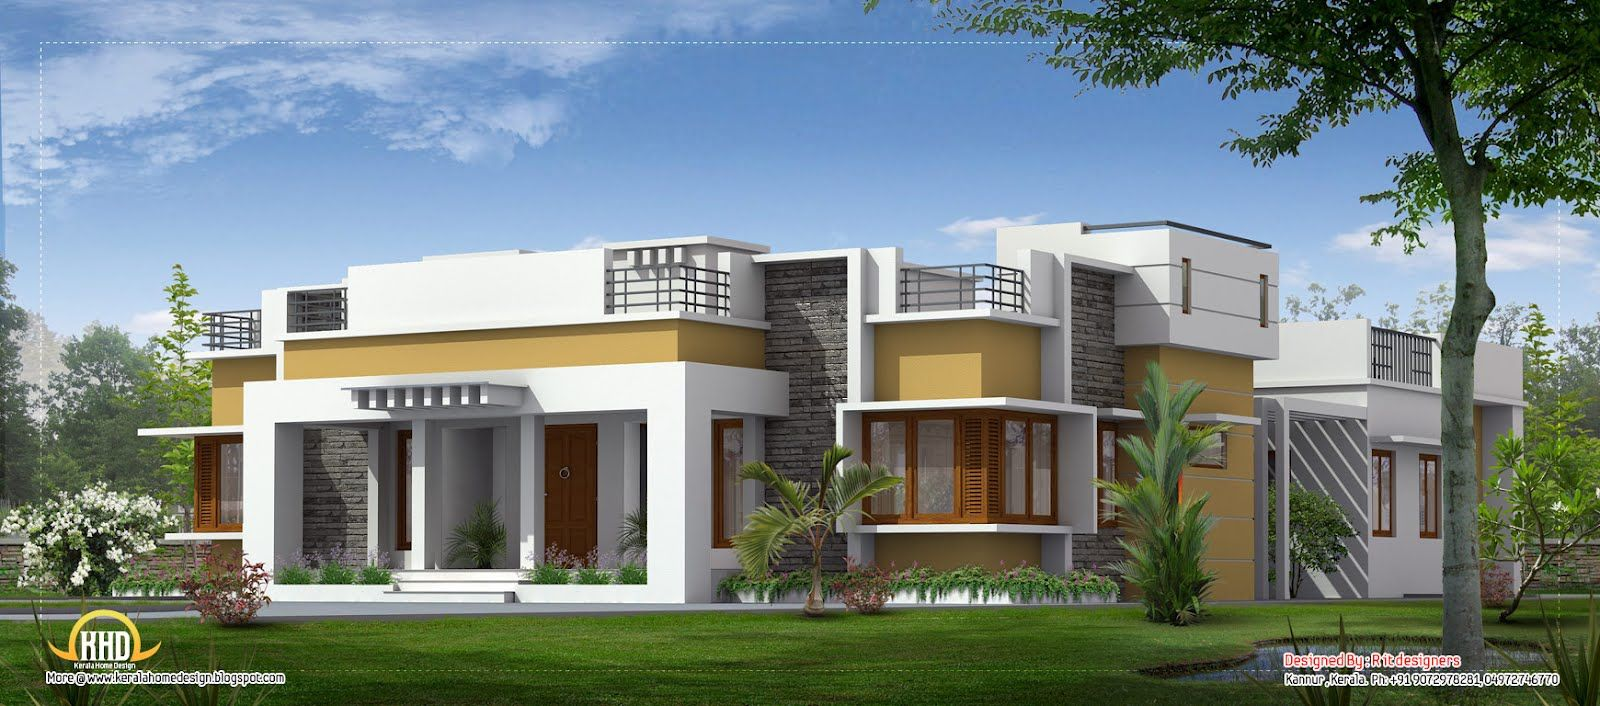 Contemporary House Elevation Single Floor: Beautiful Single Floor Home - 2910 Sq. Ft.